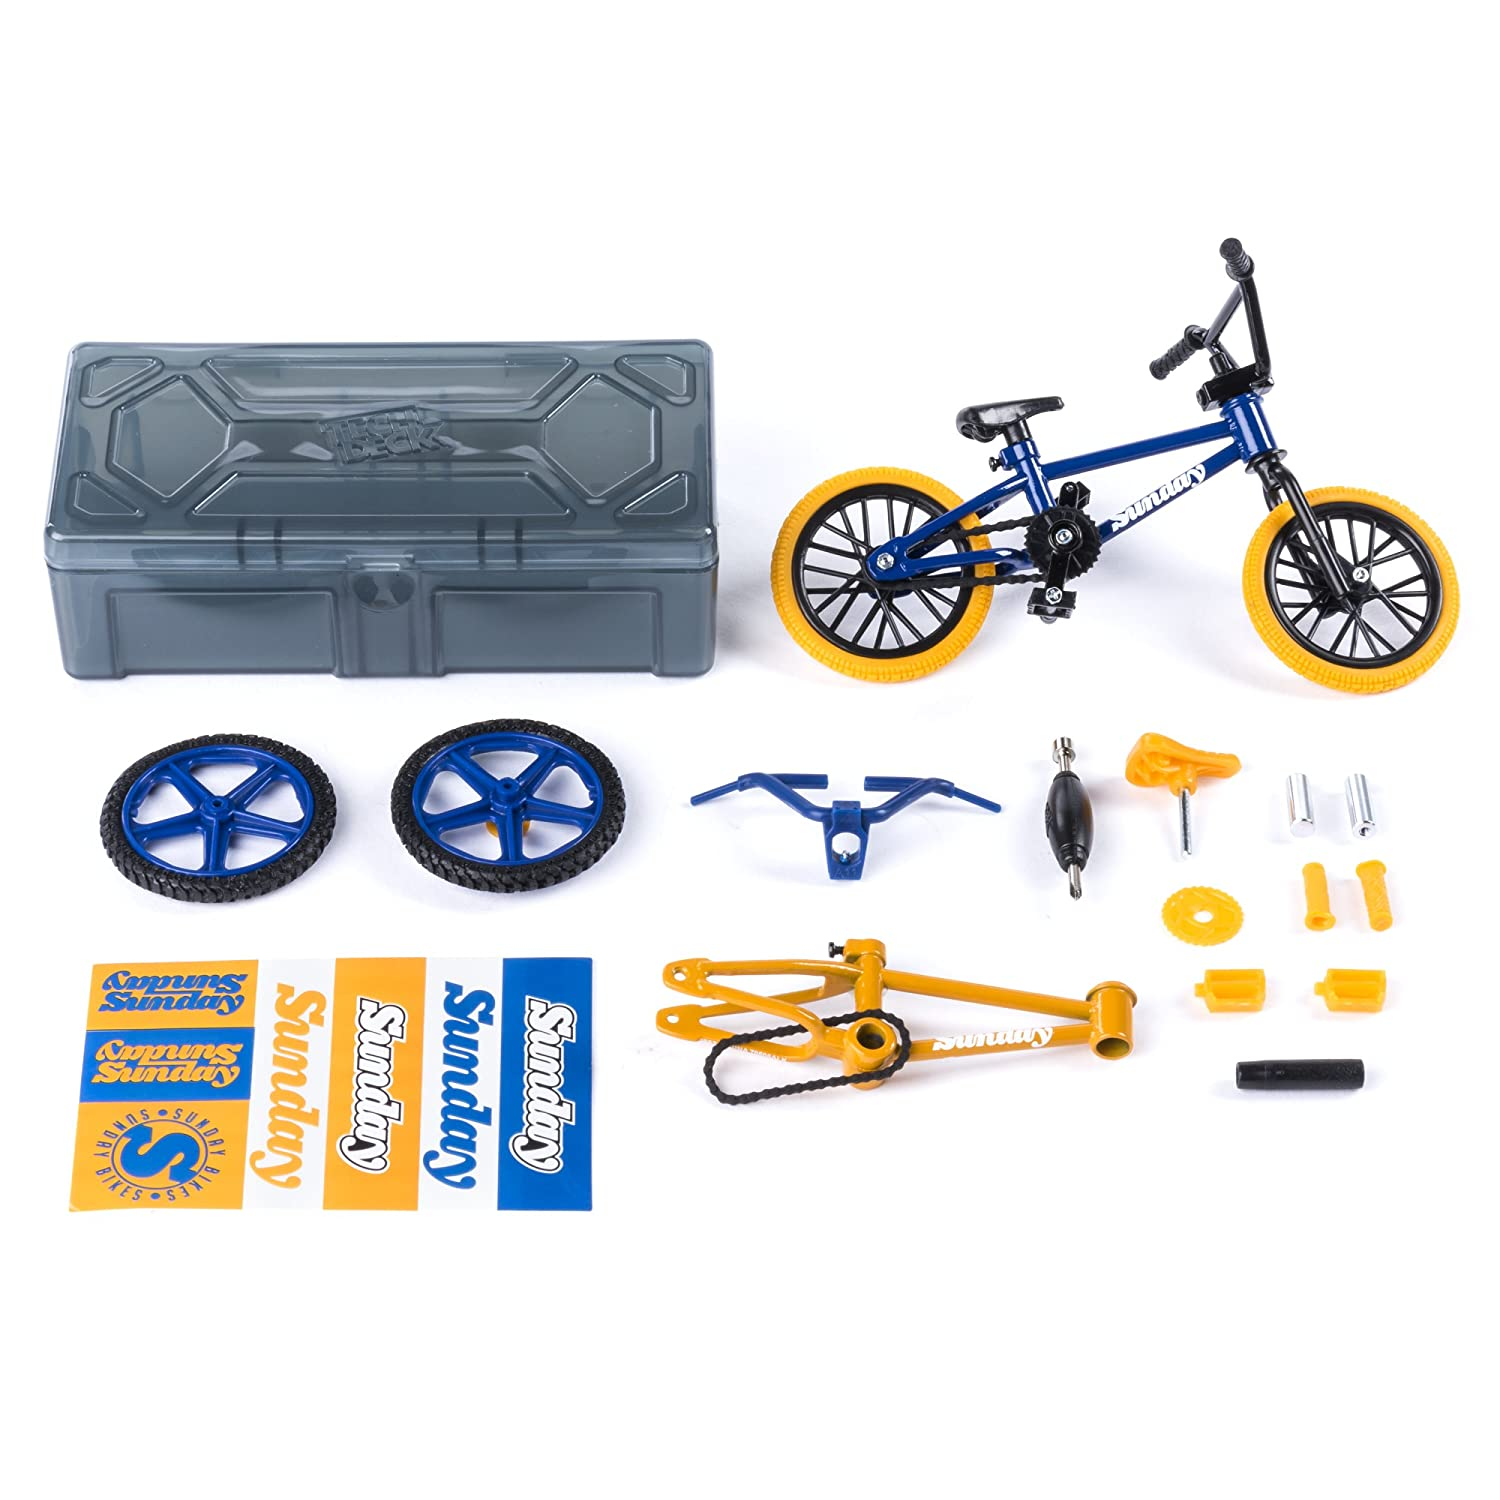 Tech Deck – BMX Bike Shop with Accessories and Storage Container – Sunday Bikes – Blue Yellow